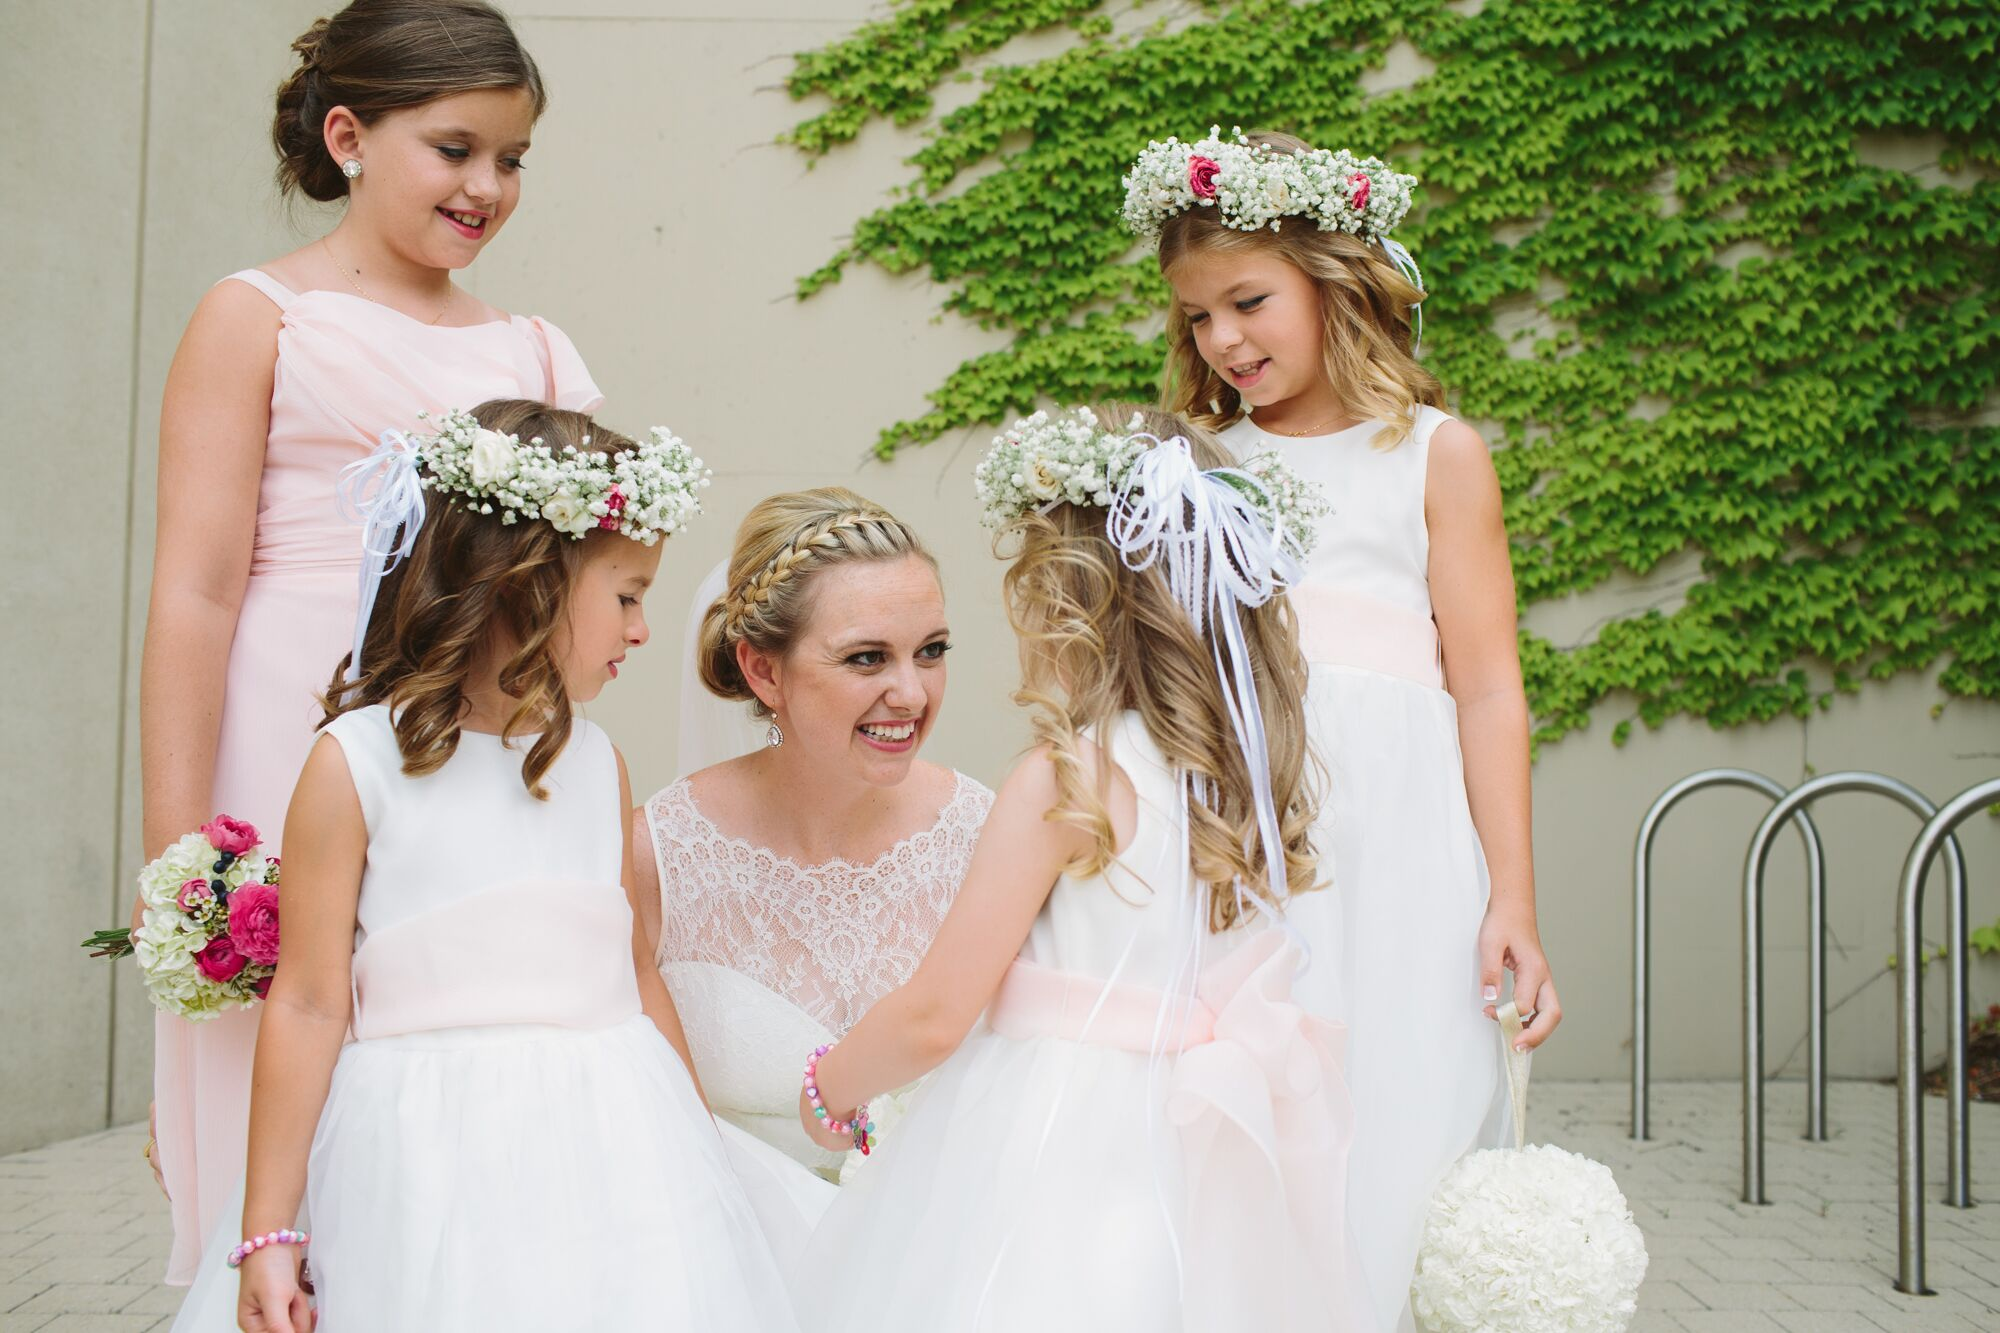 Braid Crown Bridal Hairstyle And Flower Girl Crowns